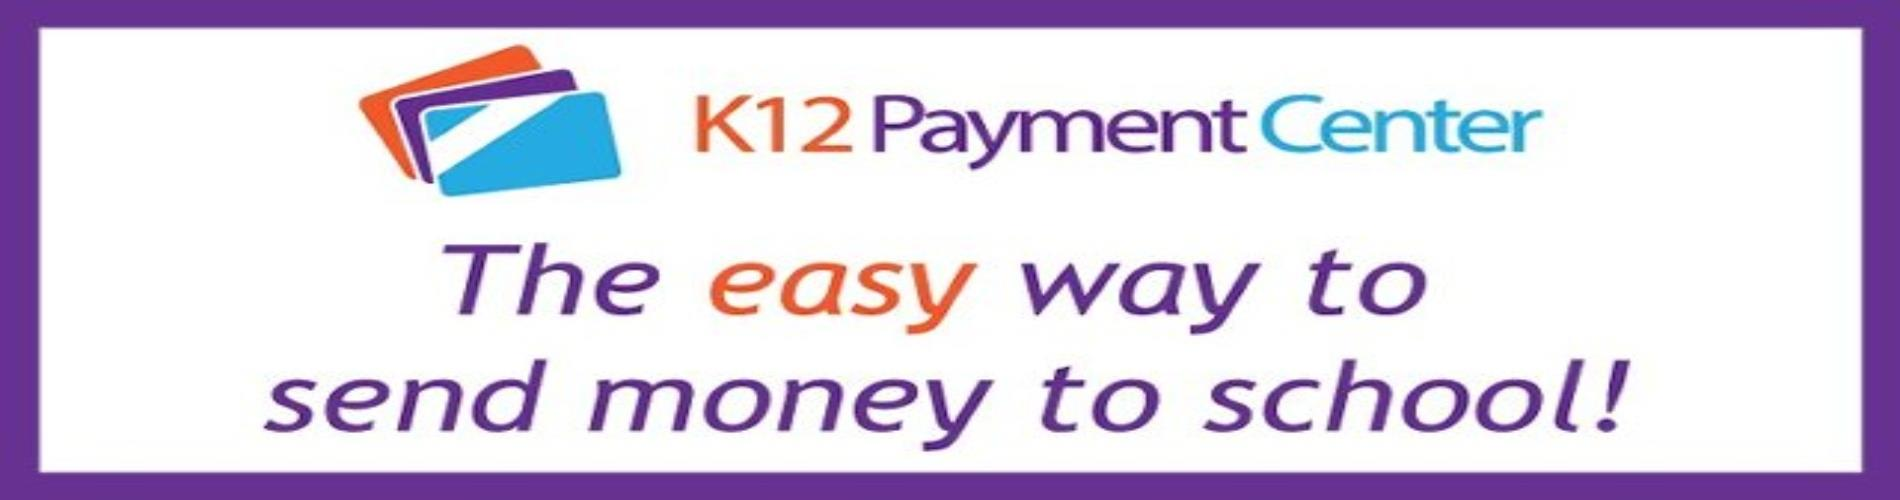 K12 Payment